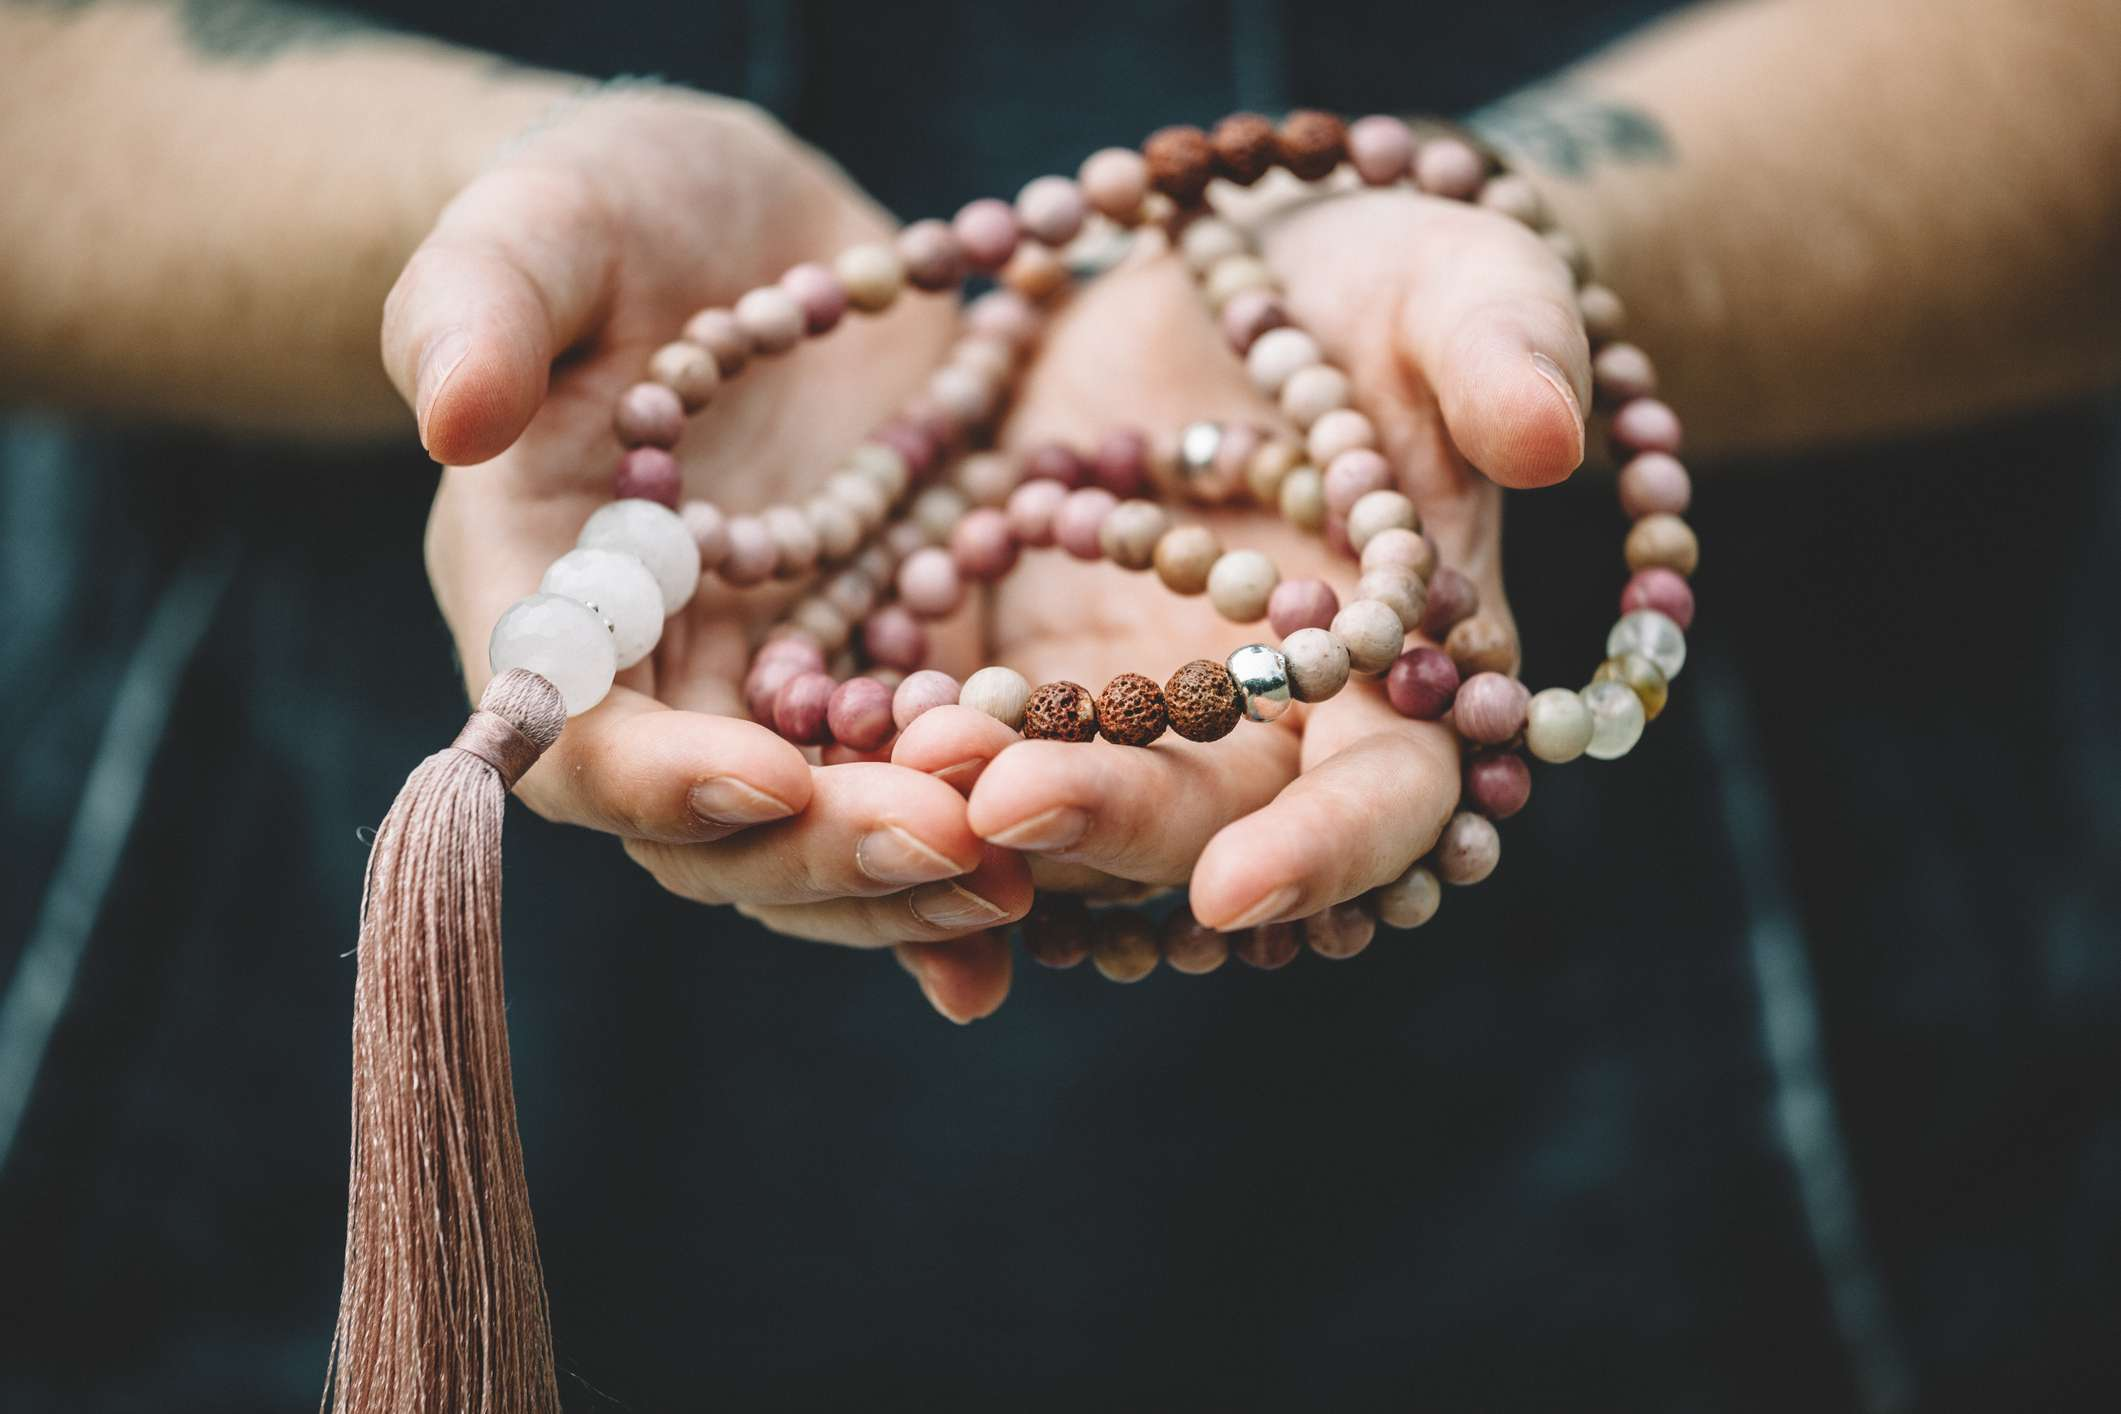 Prayer or Mala beads to chant for space clearing